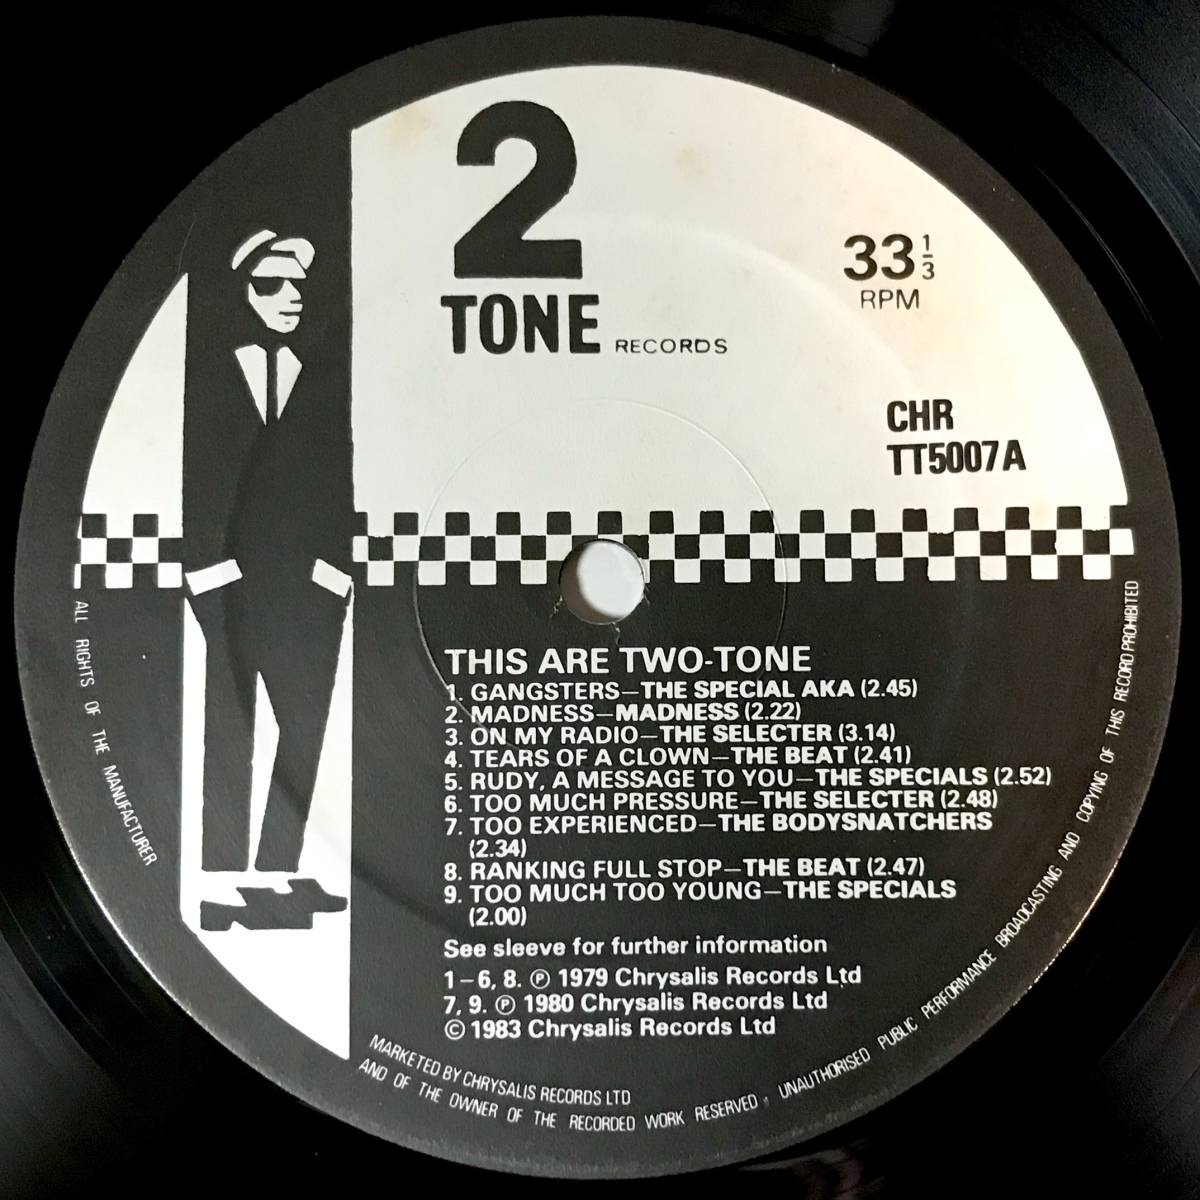 【SKA】【REGGAE】V.A.//THIS ARE TWO TONE//THE SPECIALS//MADNESS//THE SELECTER//RICO//CHRTT5007//VINYL LP/UK_画像3